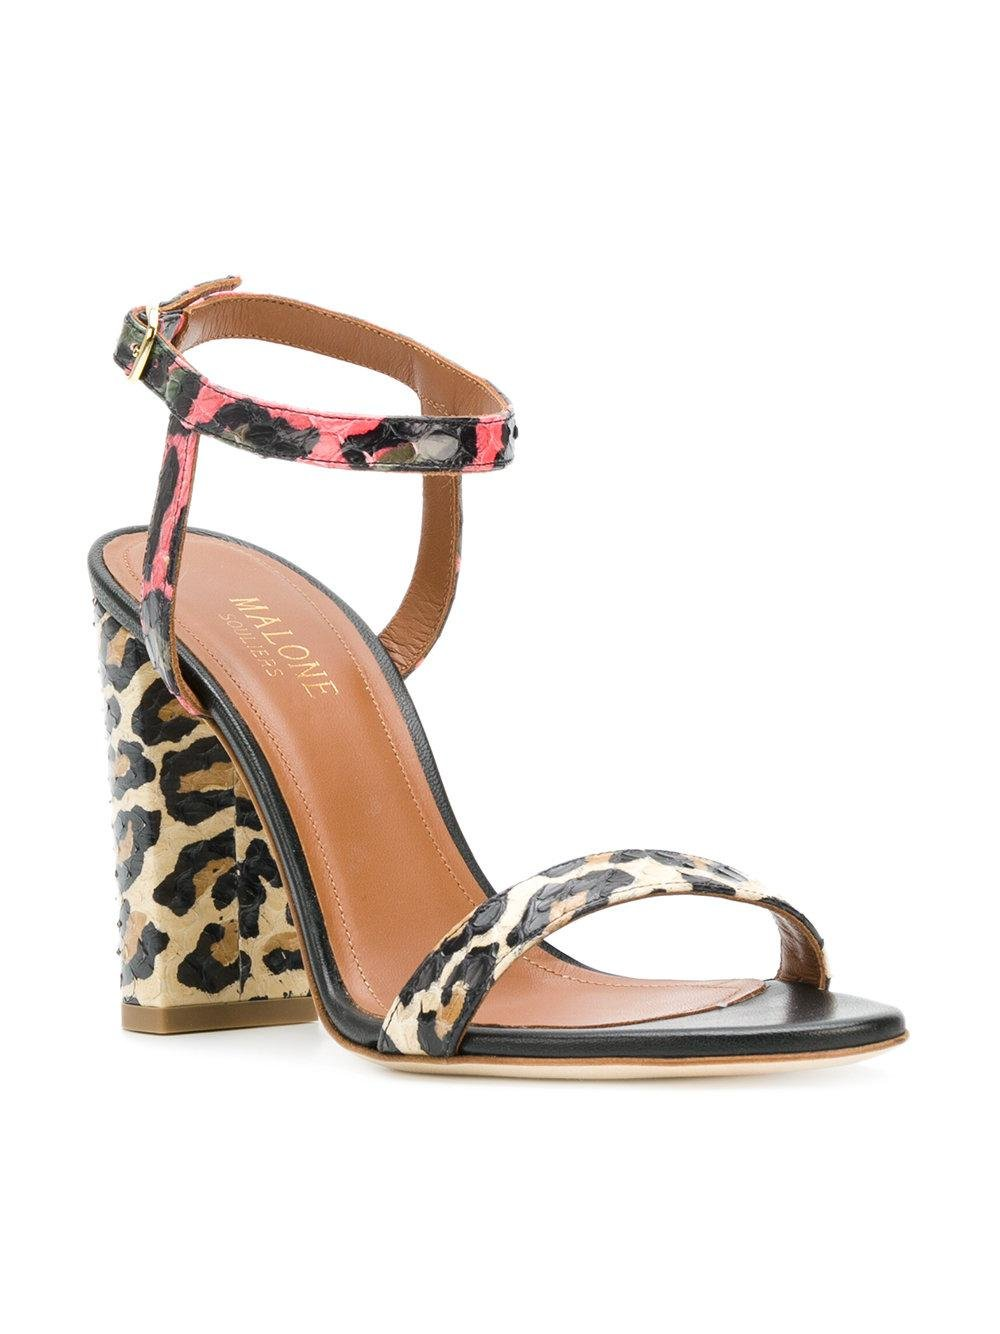 Malone Souliers animal print sandals buy cheap footaction supply cheap online buy cheap low shipping G3sjVk